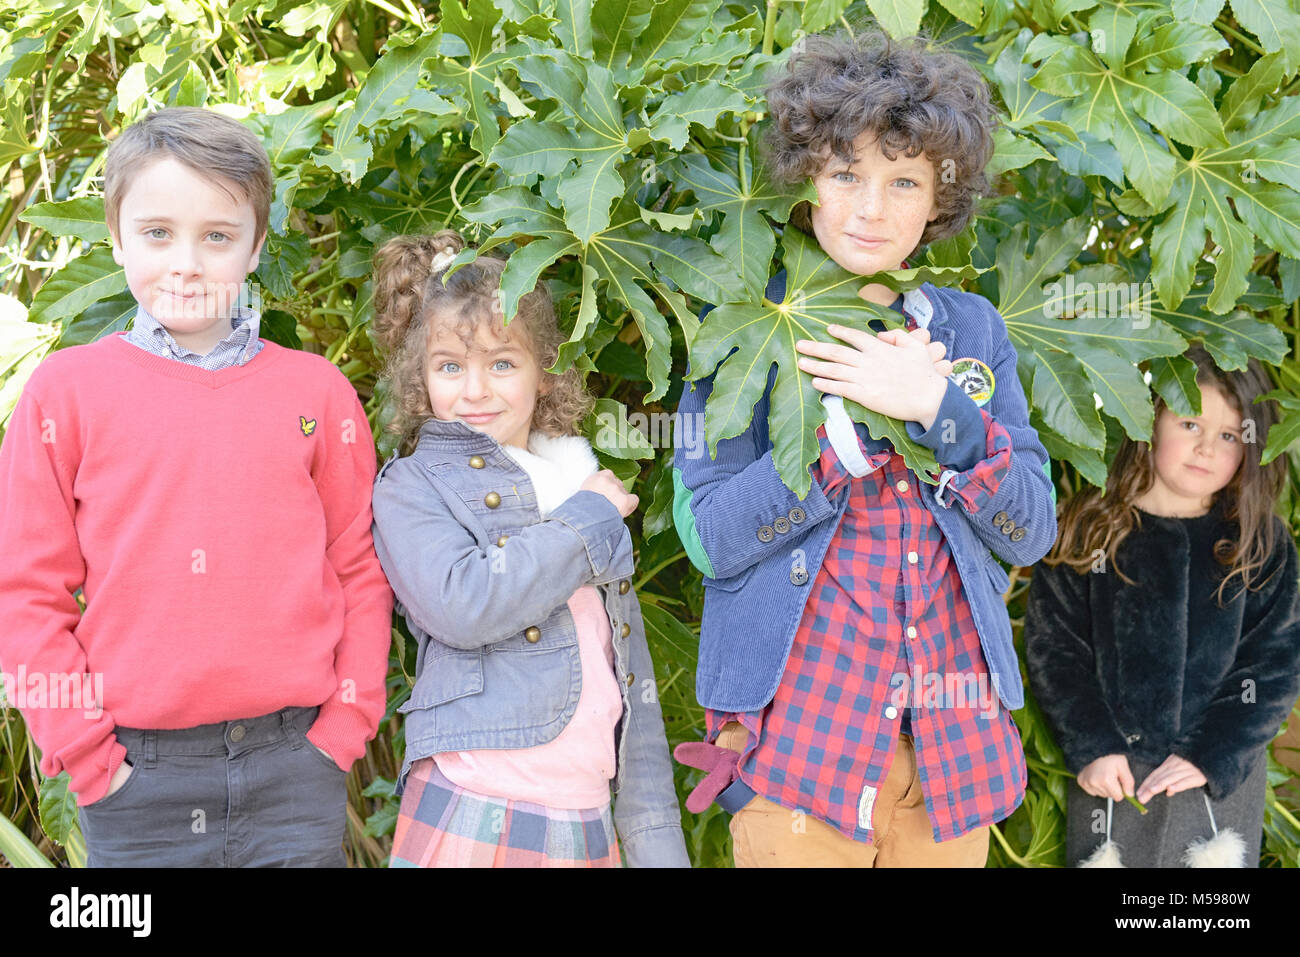 a group of children hide in some green bushes at a park - Stock Image